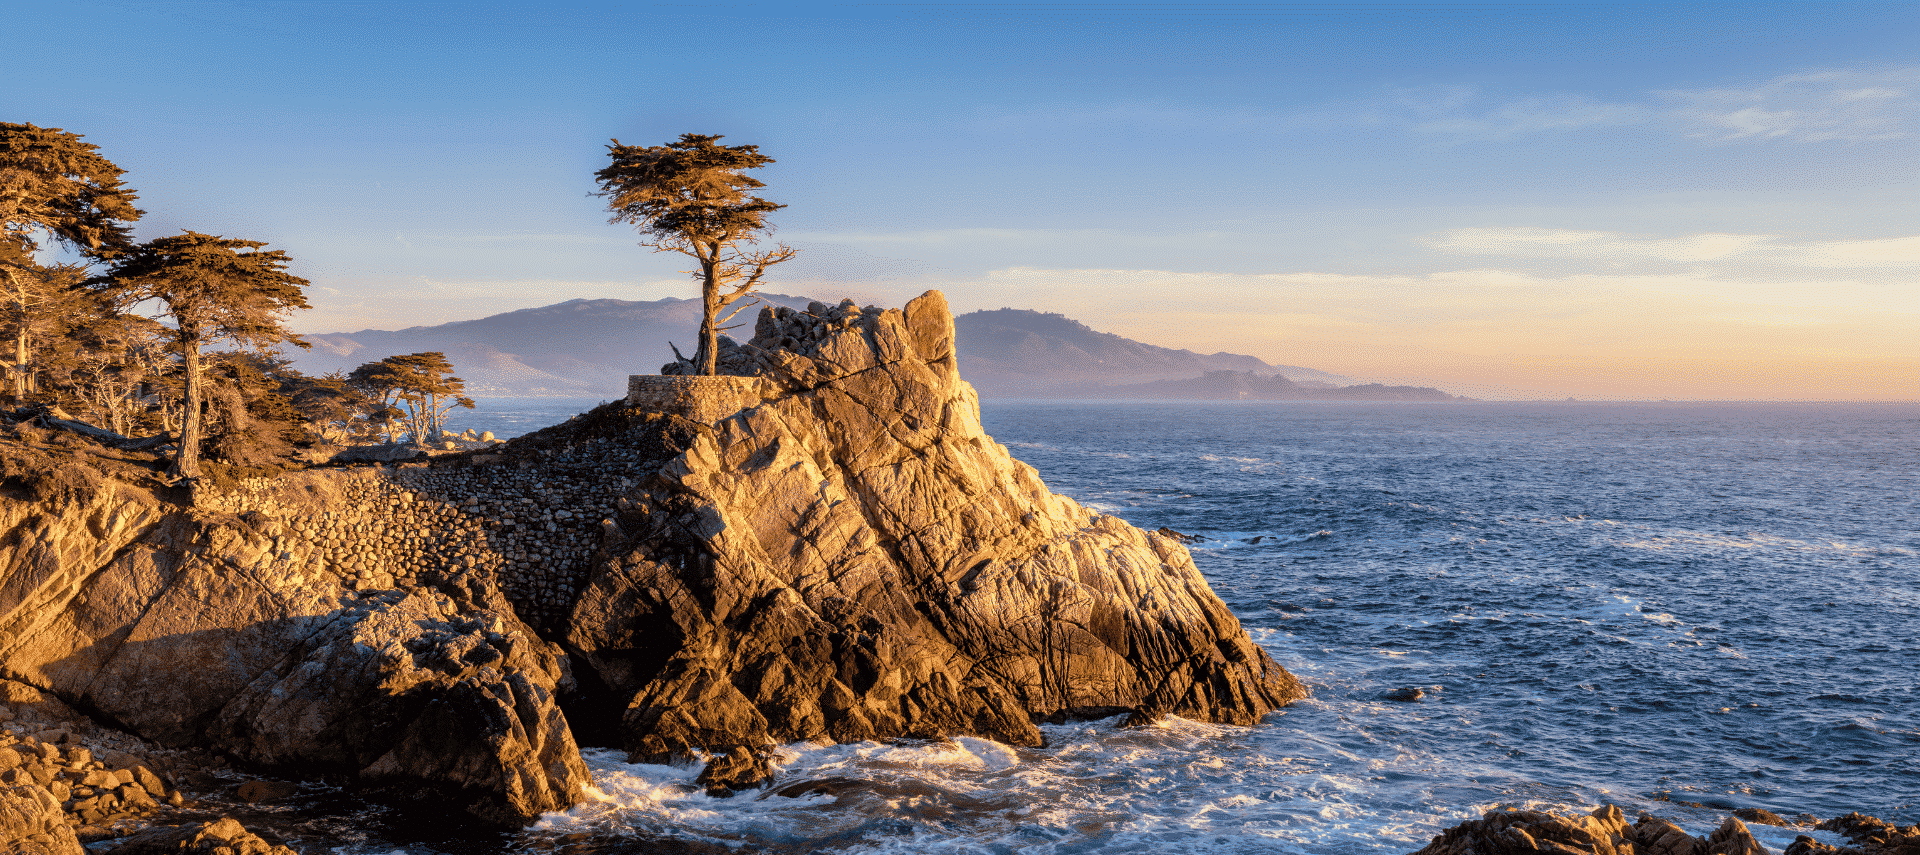 The Lone Cypress in Monterey at sunset.